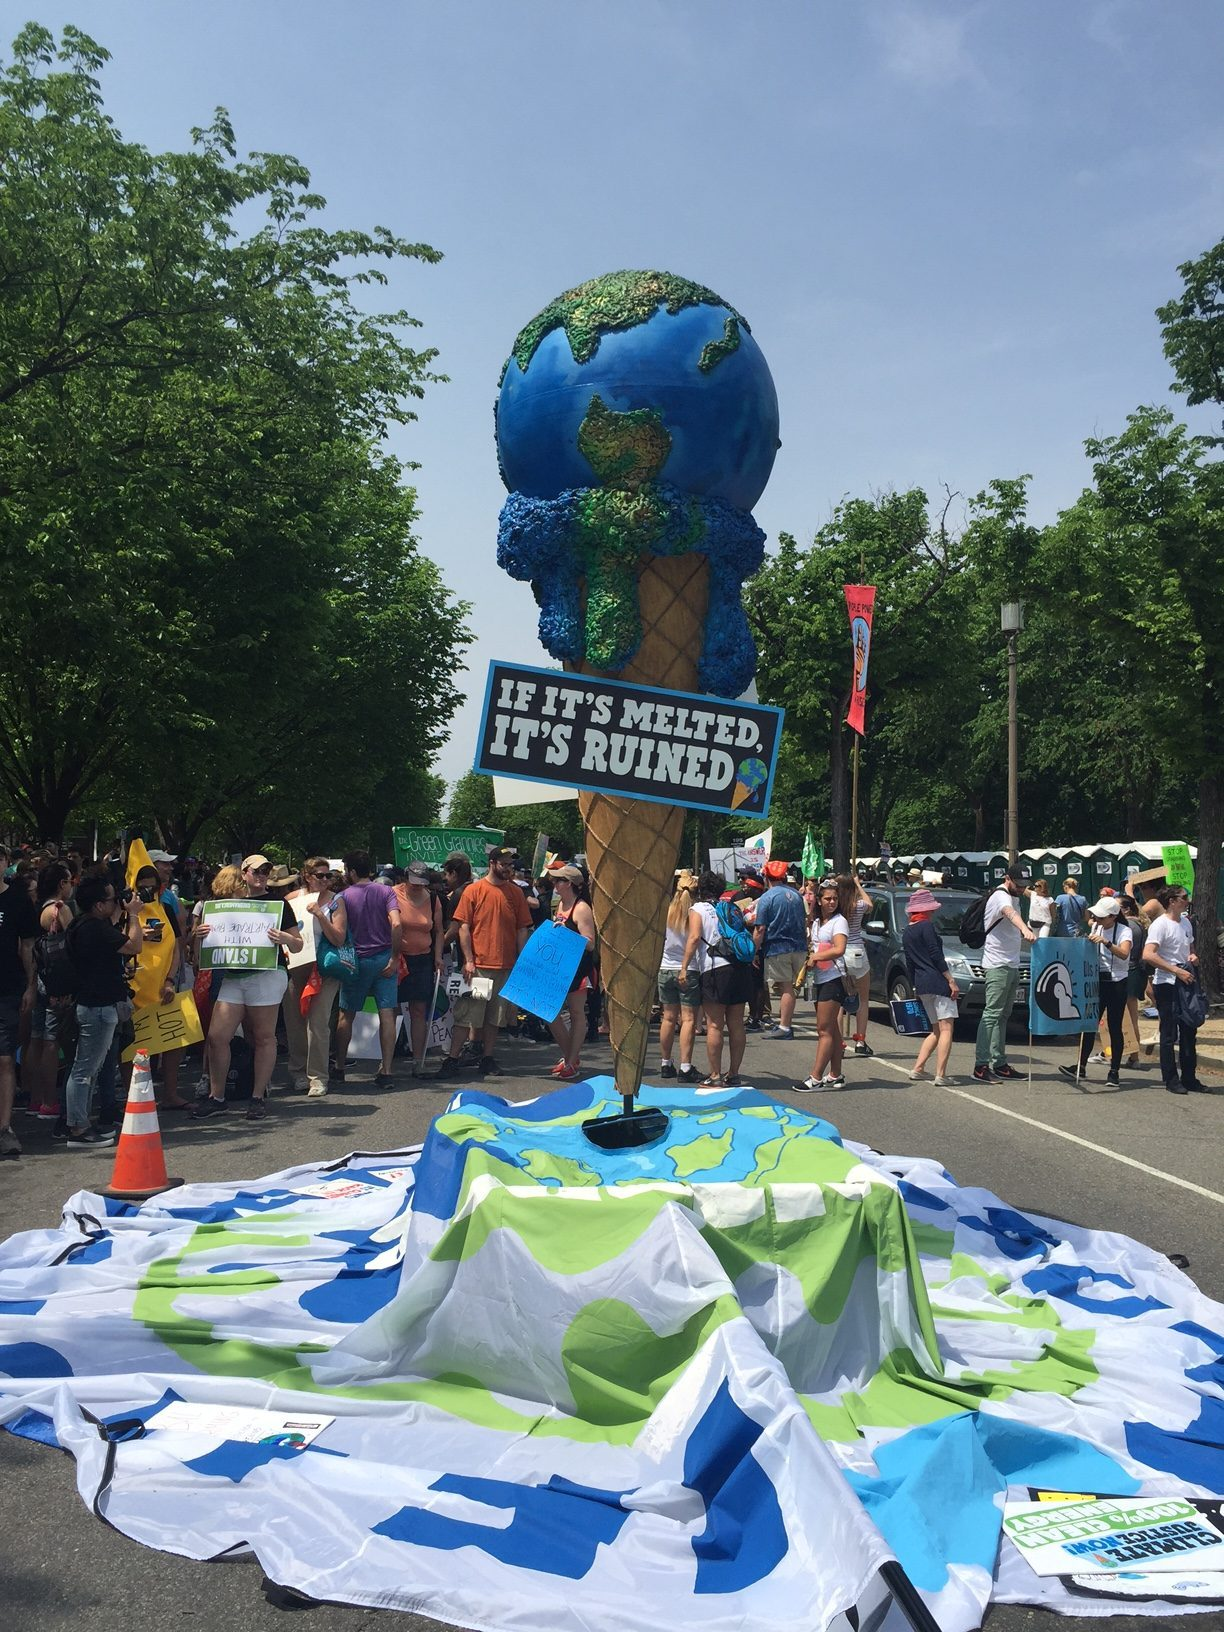 display at the People's Climate March